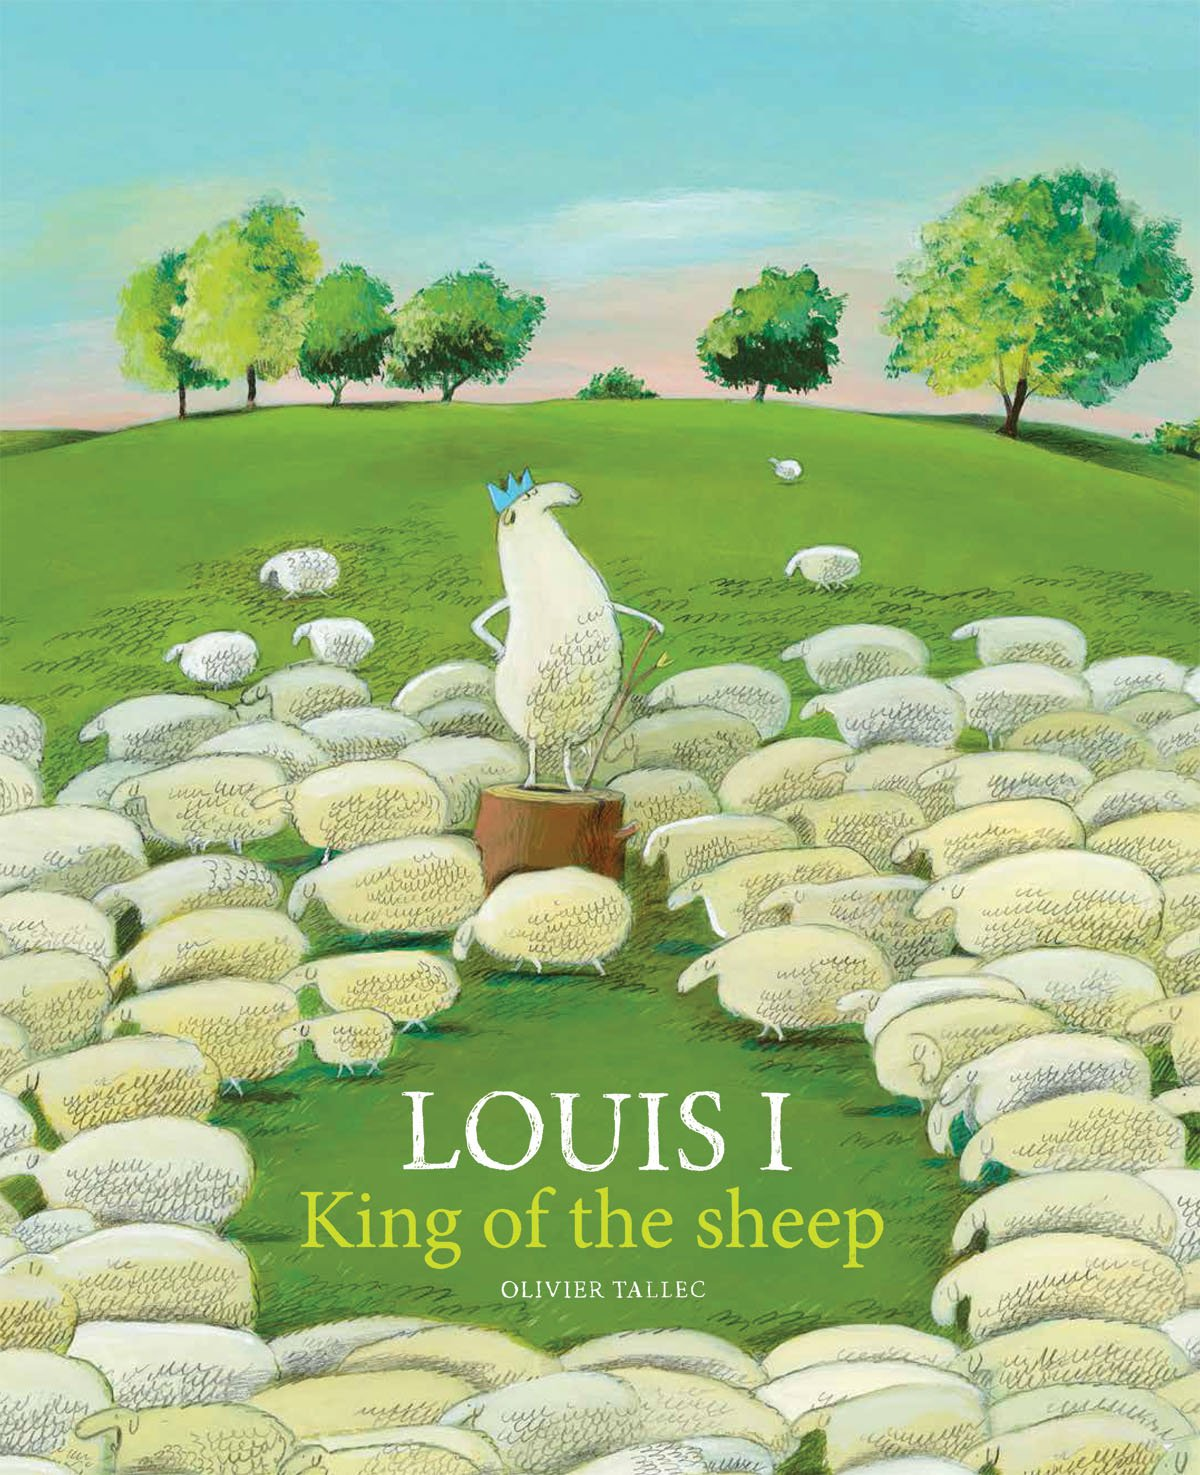 Coming Kids Olivier.Louis I King Of The Sheep Olivier Tallec 9781592701858 Amazon